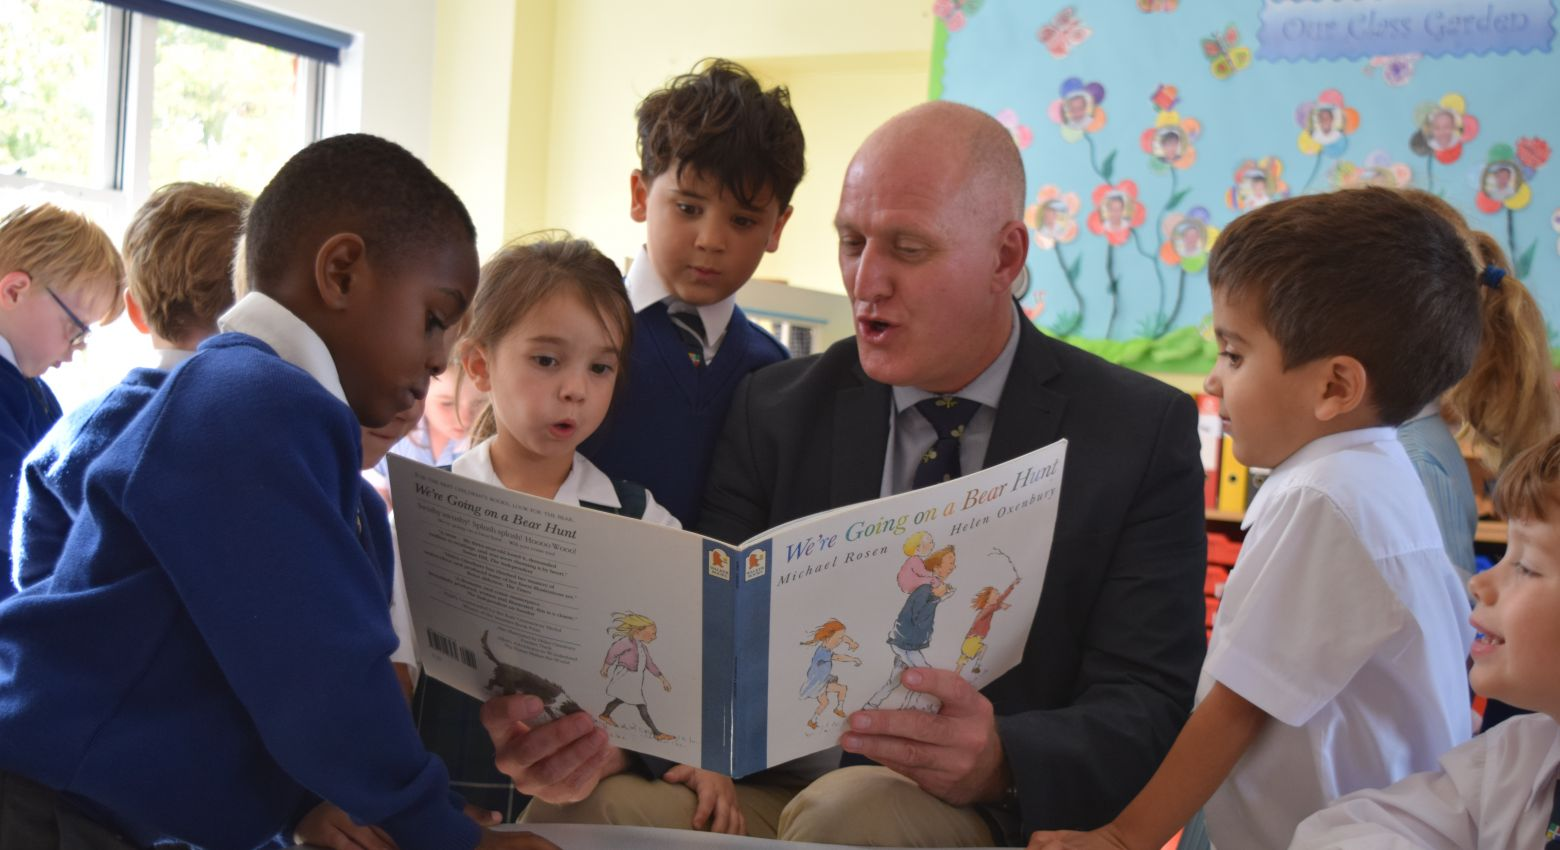 Headteacher reading to students